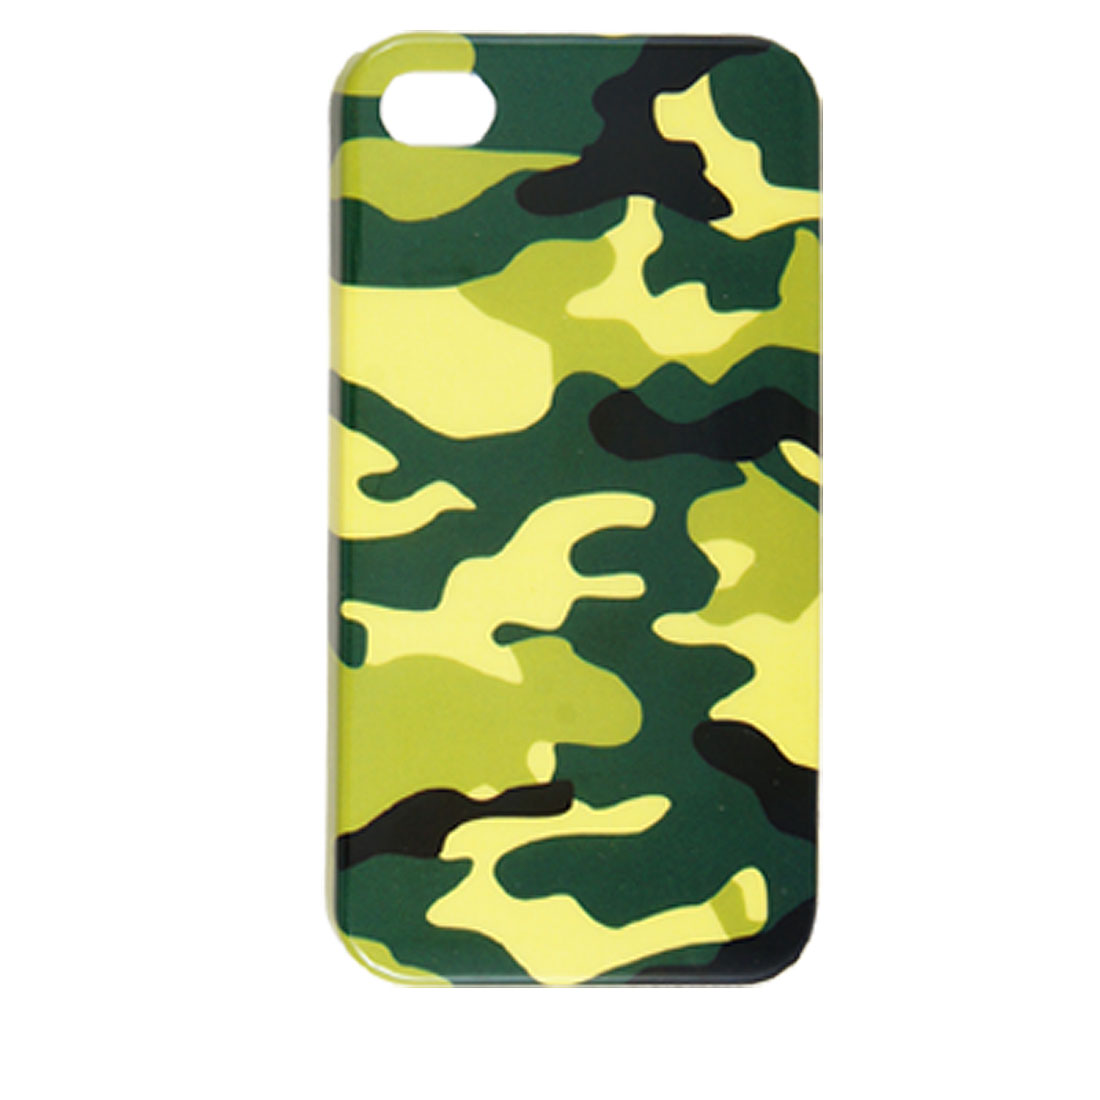 Camouflage Printed Hard Plastic Back Case for iPhone 4 4G